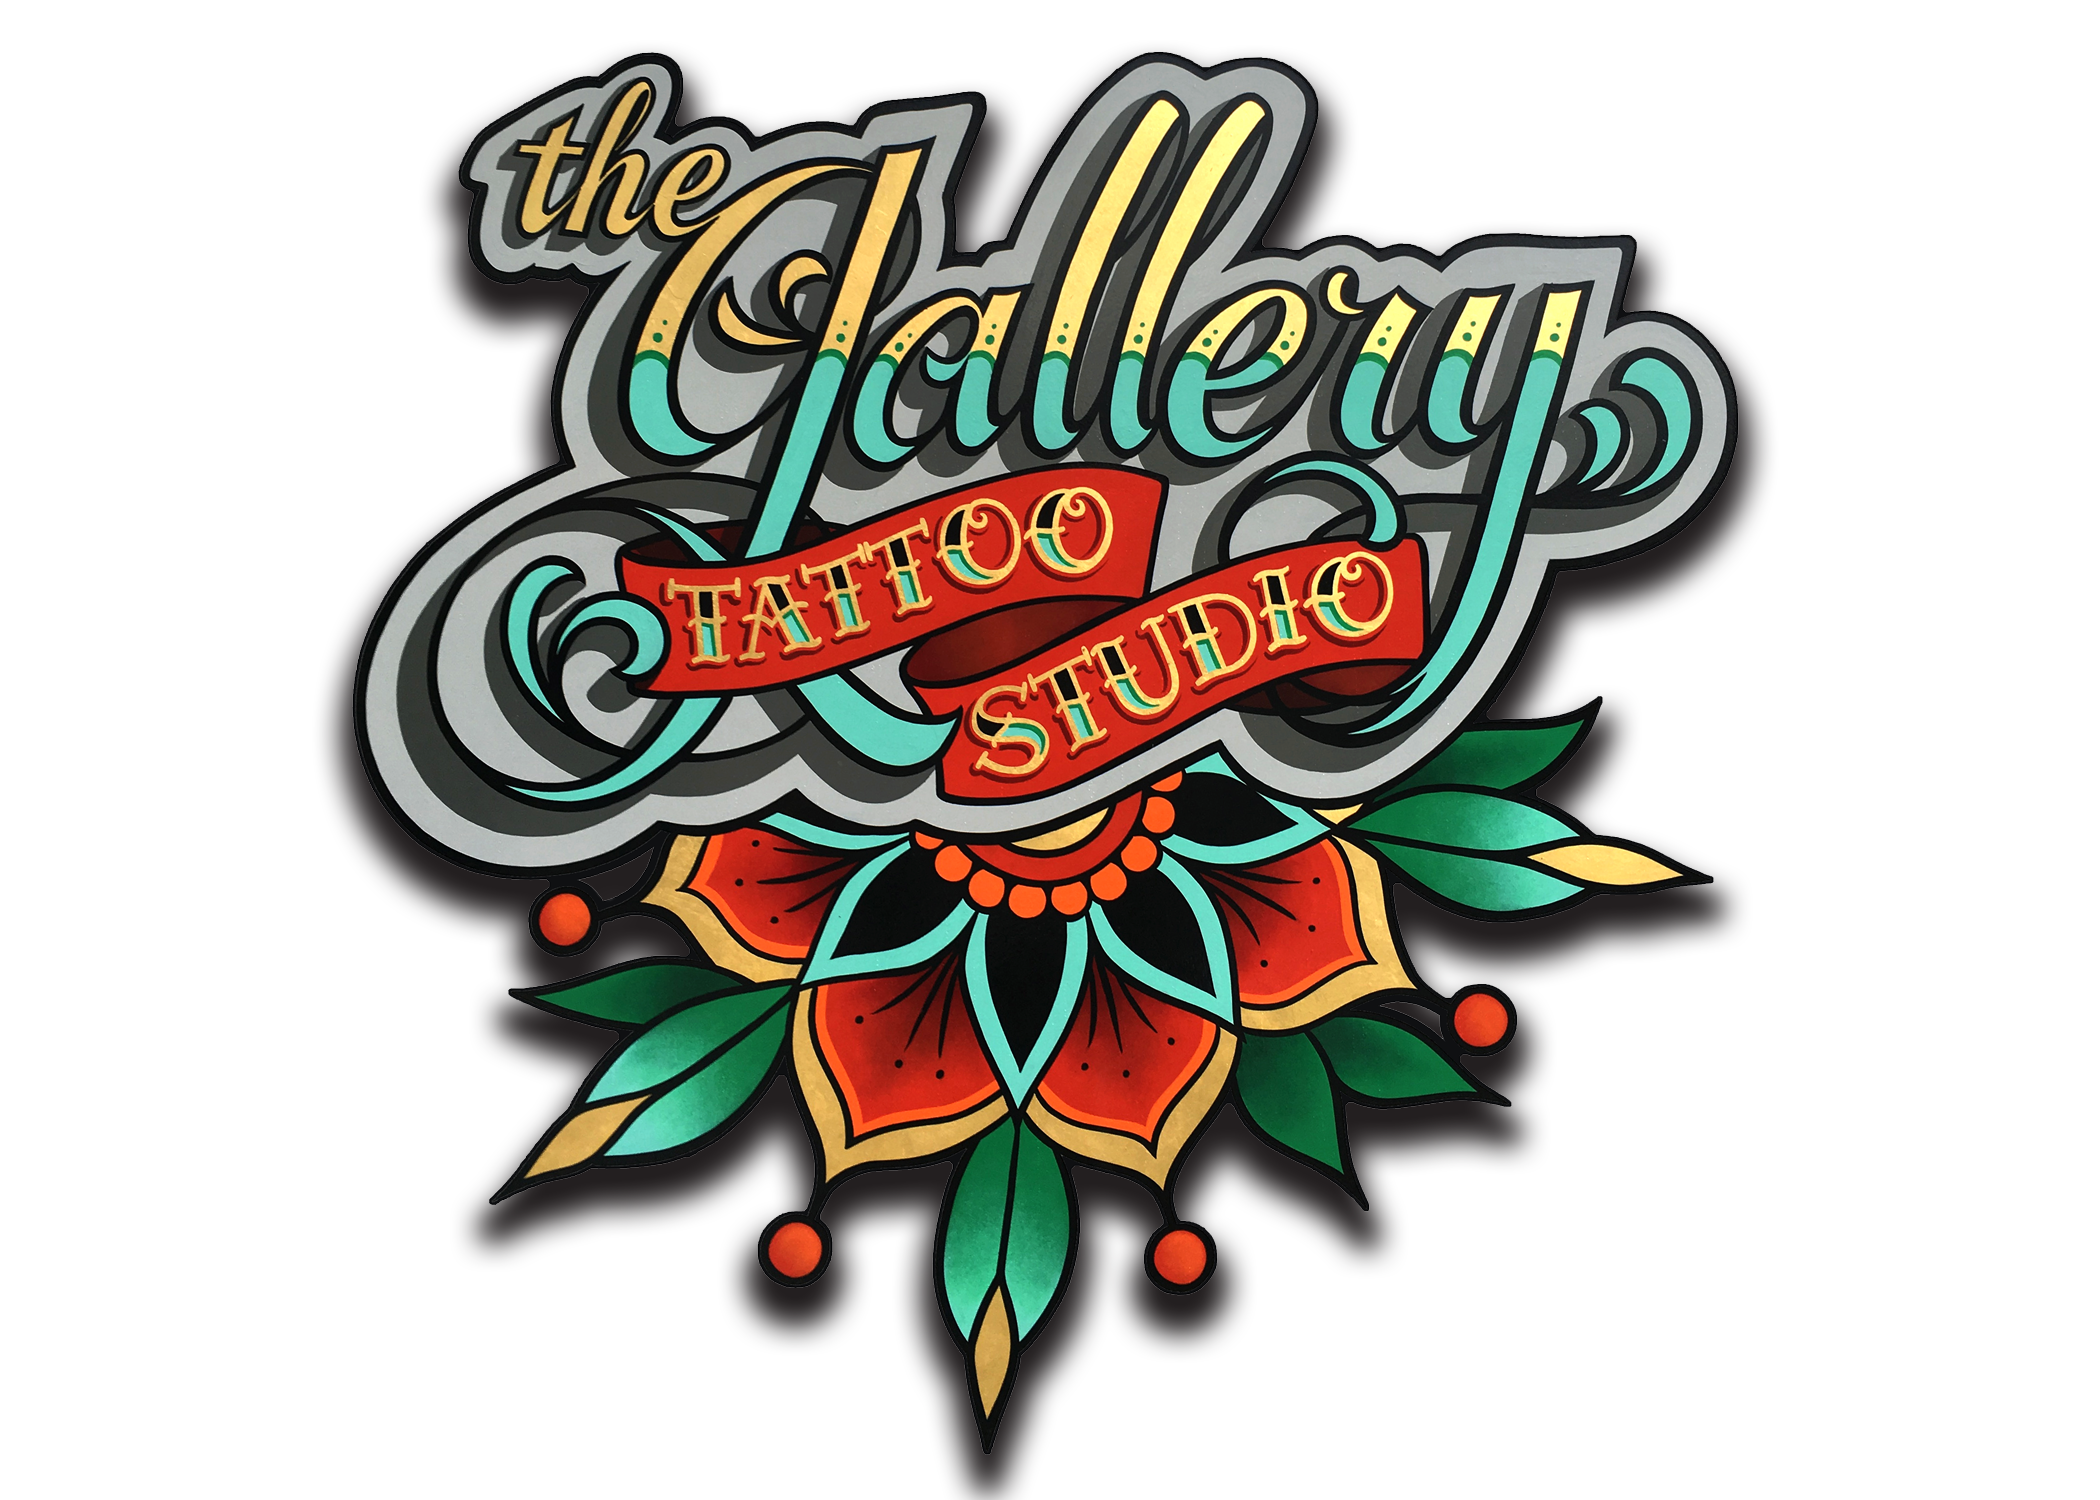 - We are open from 10am-7pm Tuesday -Saturday1139 Main St. Concord, MA 01742Feel free to give a call at (978) 610-6861.OR e-mail us at; thegallerytattoostudio@gmail.com